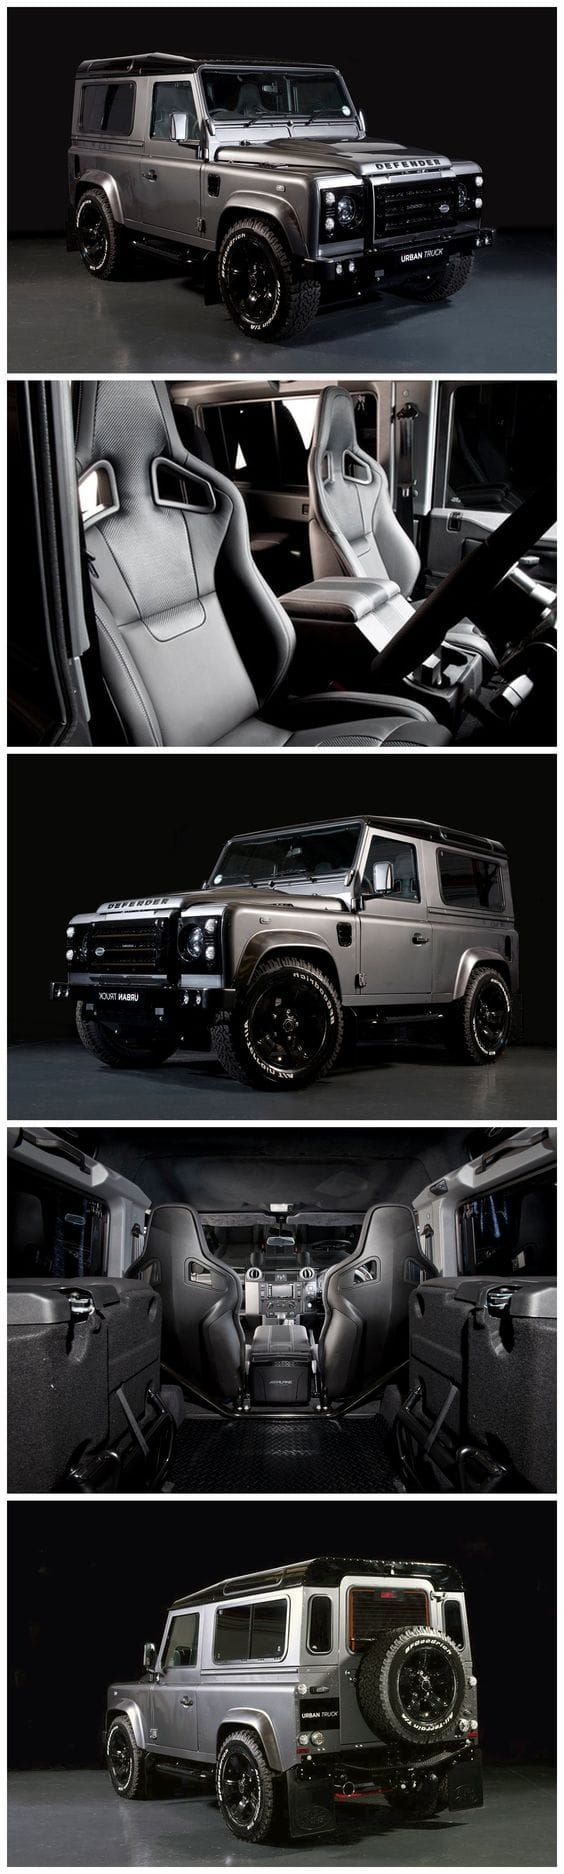 "Most luxurious SUVs In The World ""Land Rover Defender"" 2017 Best luxury SUVs"